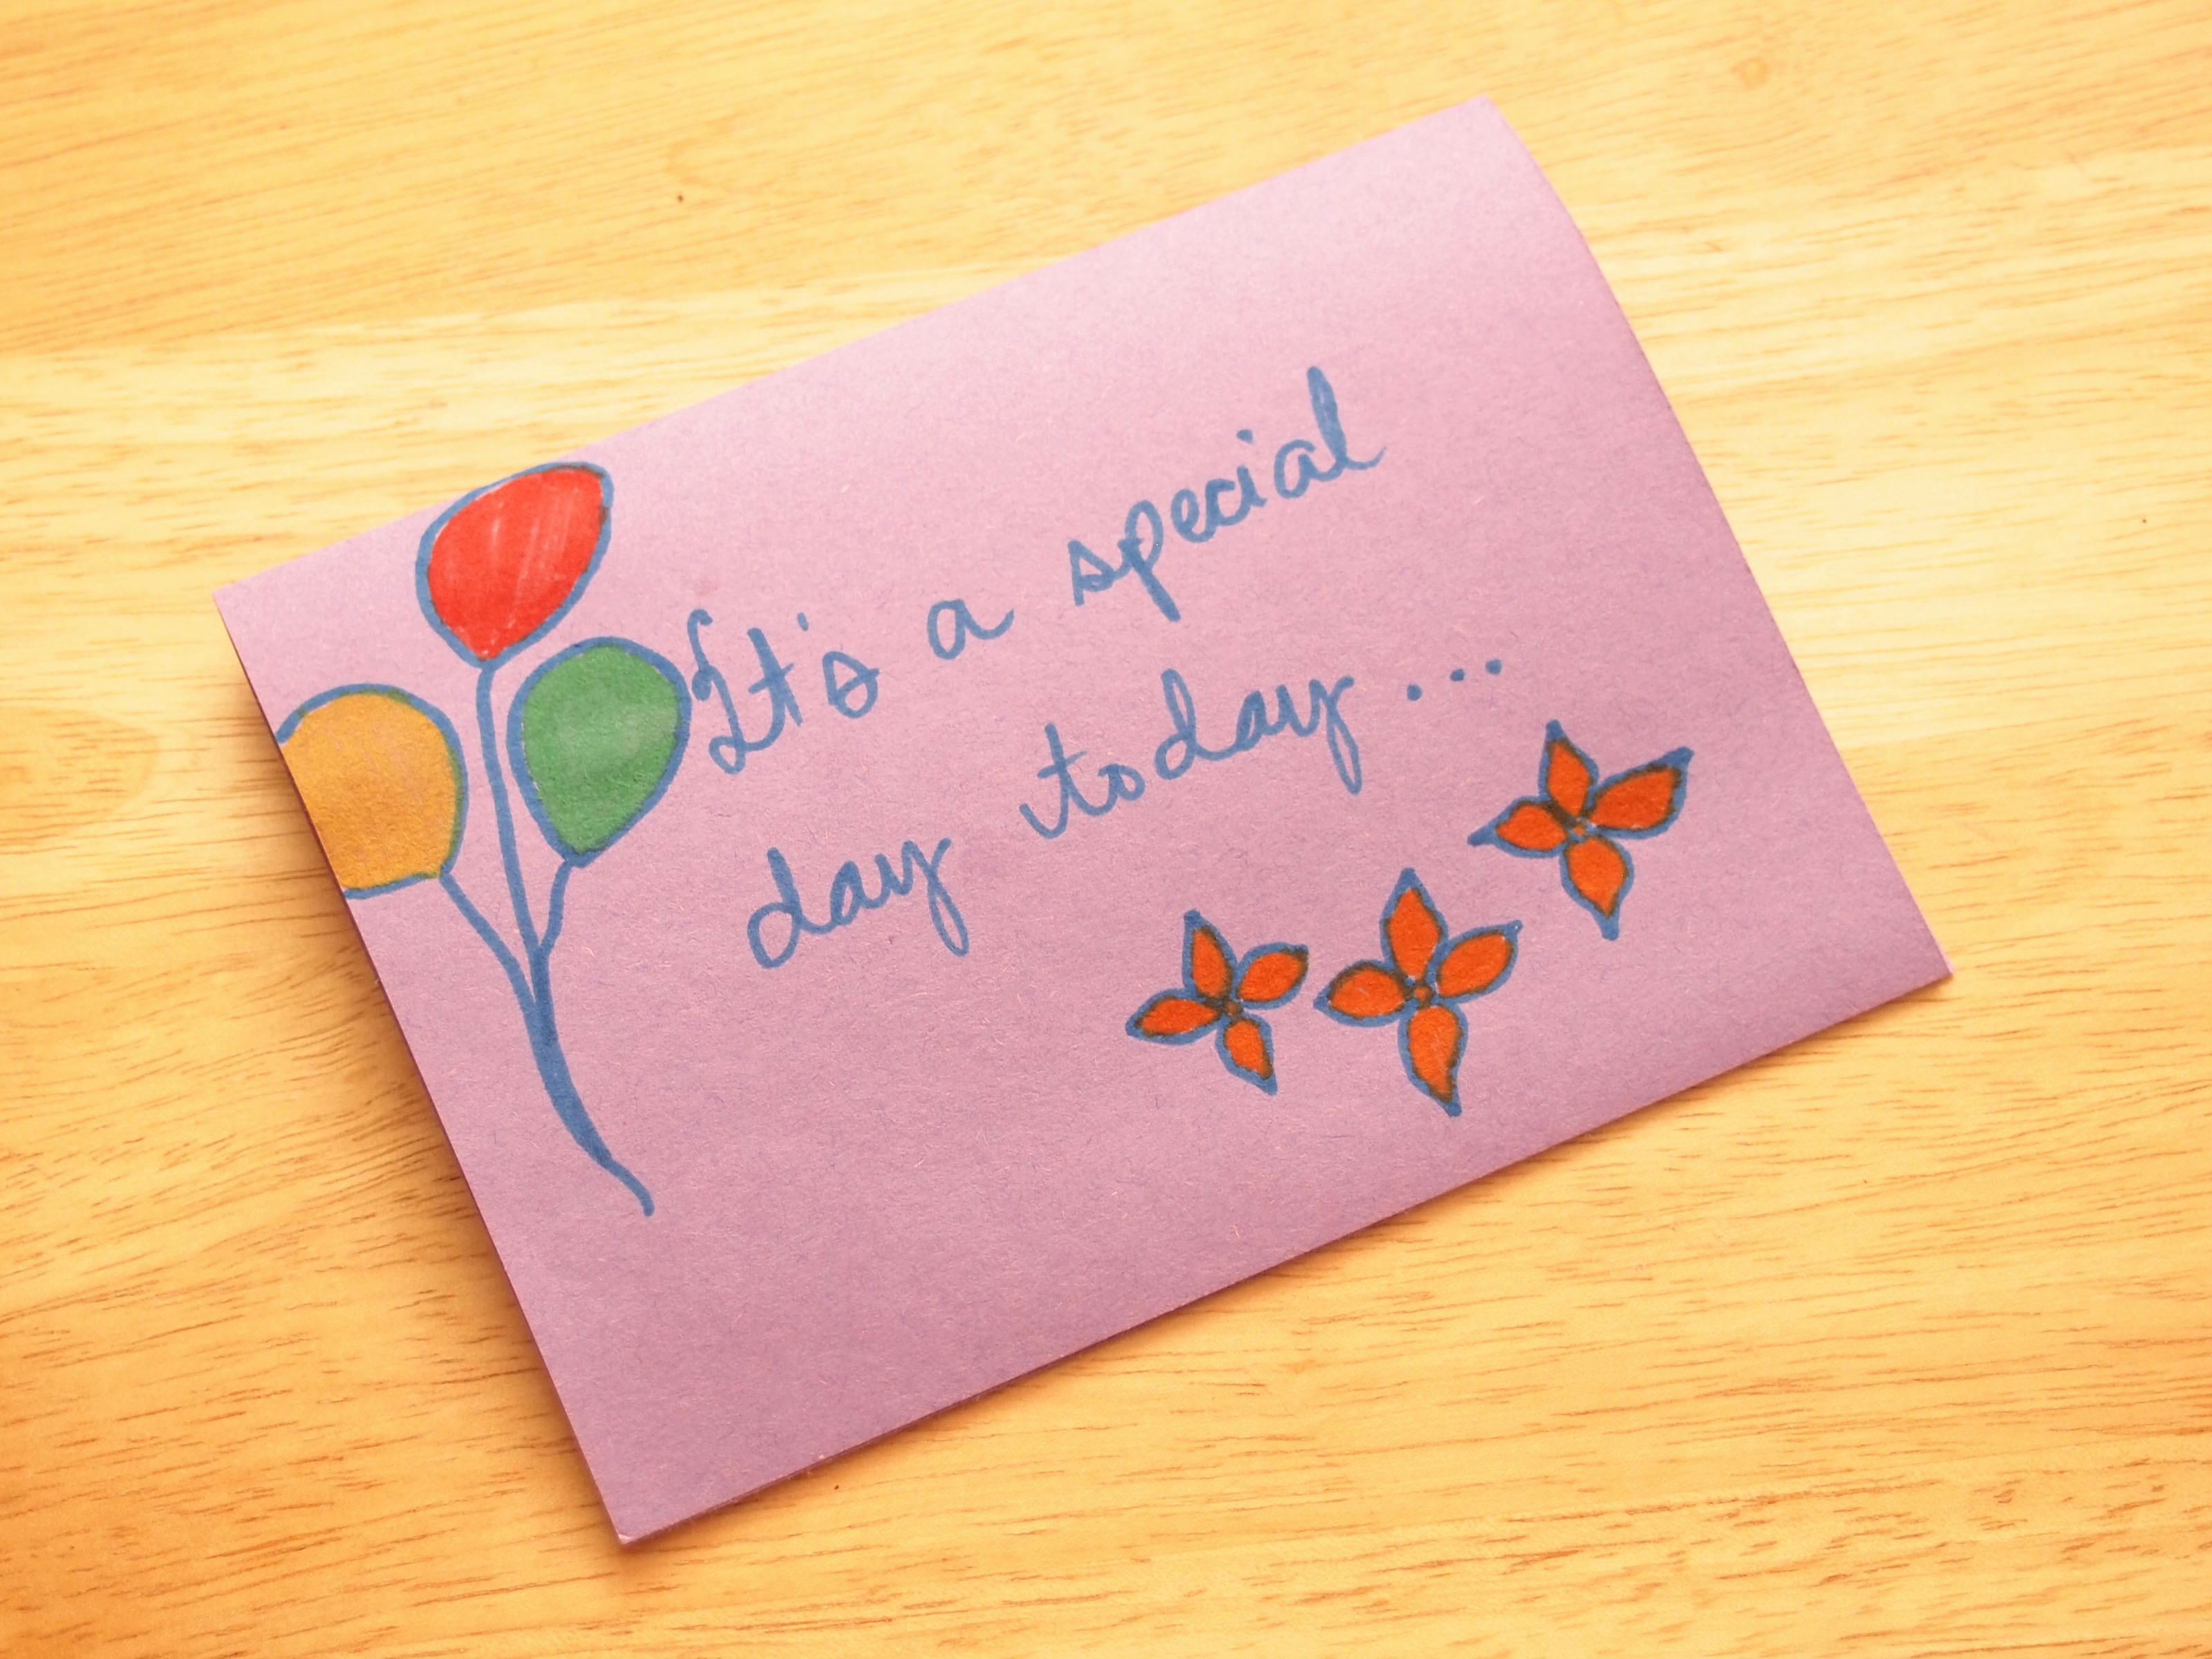 Ideas To Make A Birthday Card For A Best Friend Ideas For Making Birthday Cards At Home Best Of Birthday Cards For